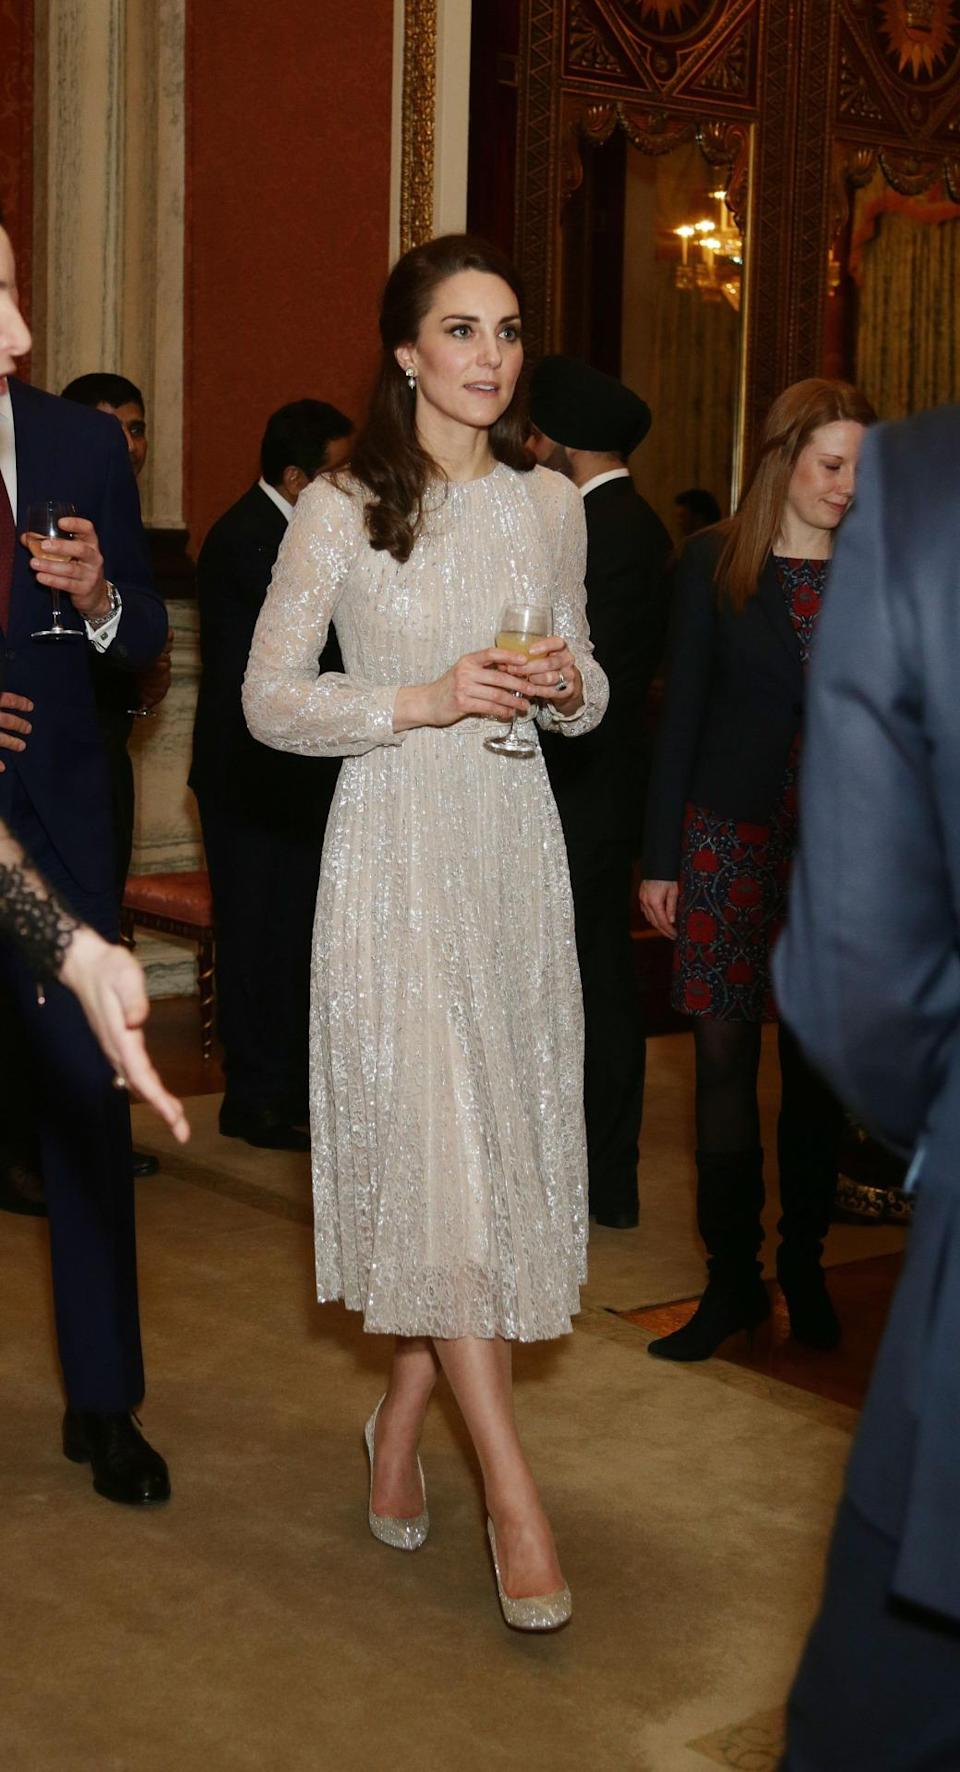 """<p>For a reception held at Buckingham Palace to celebrate the UK-India Year of Culture, Kate chose a look by her favourite British designer, Erdem. The cocktail dress was made from a metallic lace and featured semi-sheer sleeves as well as a pleated skirt. It sold out straight after the Duchess wore it but luckily, her glittering Oscar de la Renta heels can <a href=""""http://www.oscardelarenta.com/new-arrivals/platinum-lame-cabrina-pumps"""" rel=""""nofollow noopener"""" target=""""_blank"""" data-ylk=""""slk:still be yours"""" class=""""link rapid-noclick-resp"""">still be yours</a>. </p><p><i>[Photo: PA]</i> </p>"""